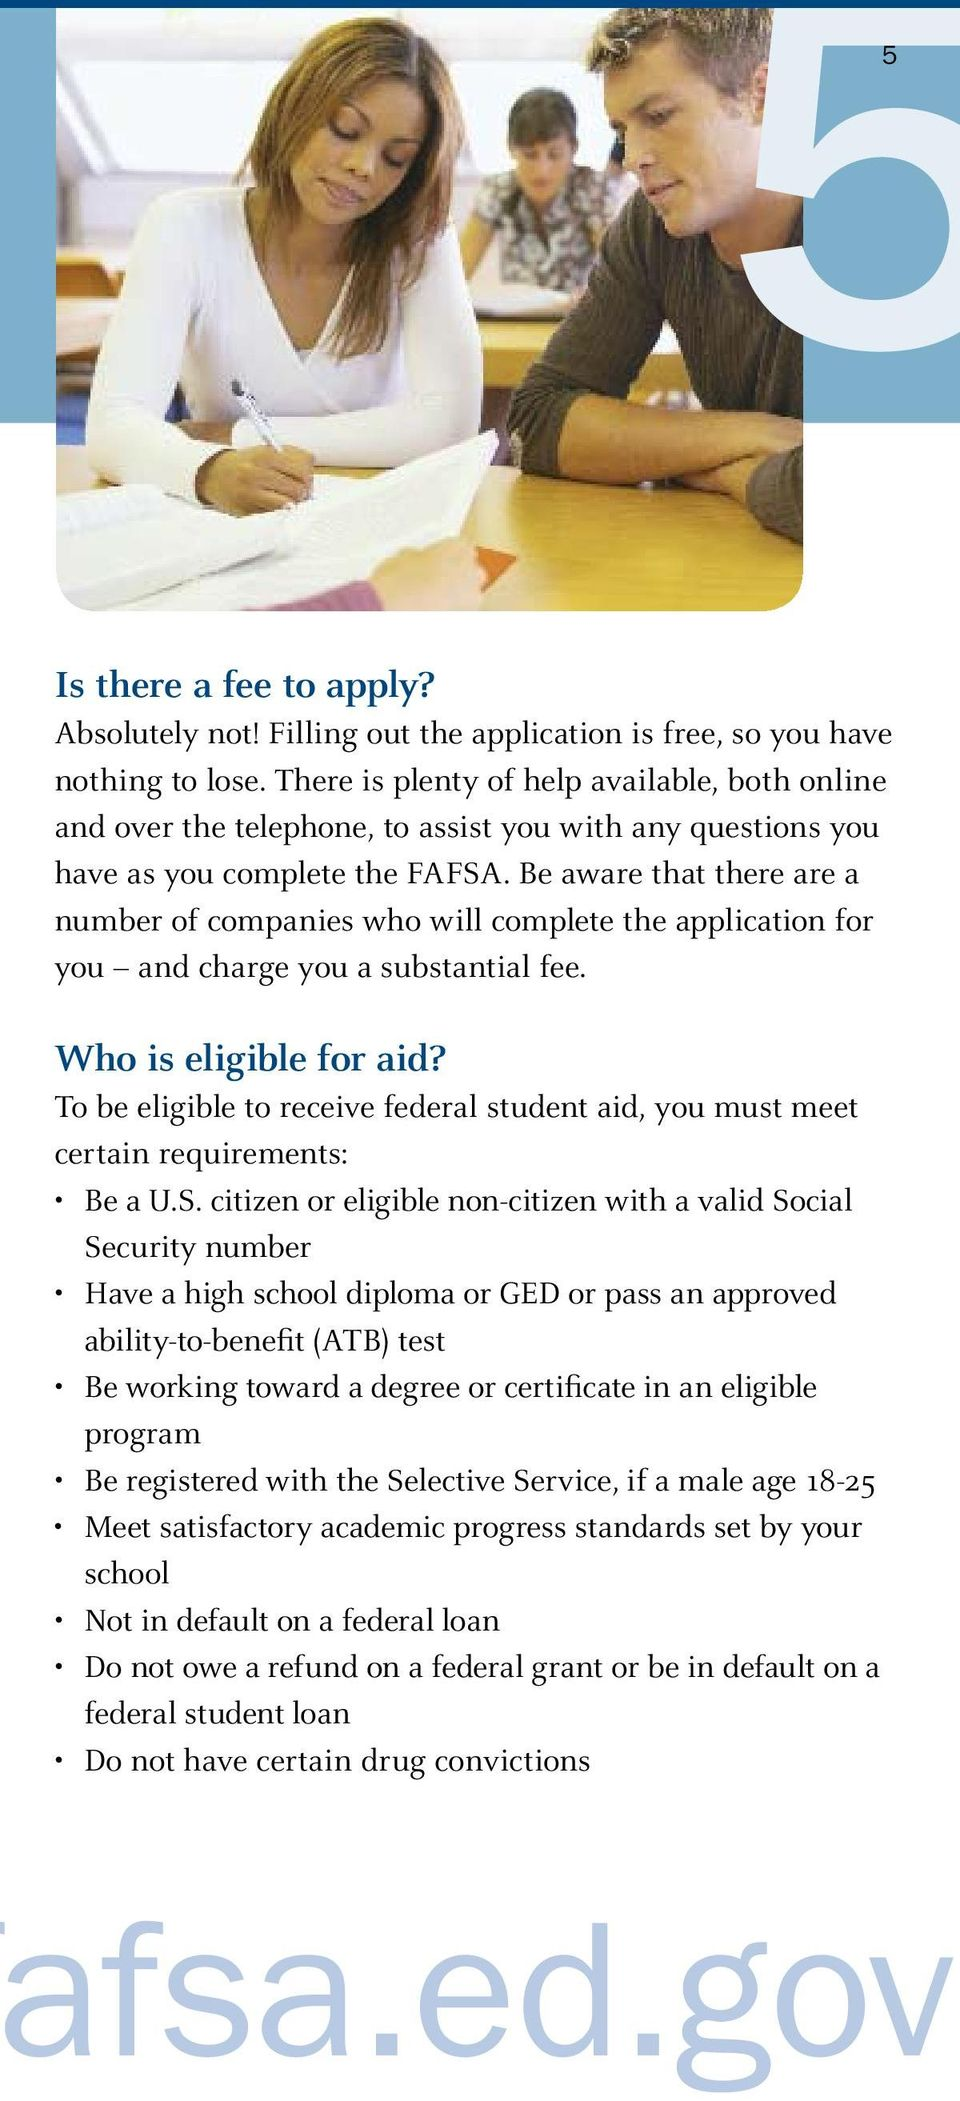 Be aware that there are a number of companies who will complete the application for you and charge you a substantial fee. Who is eligible for aid?